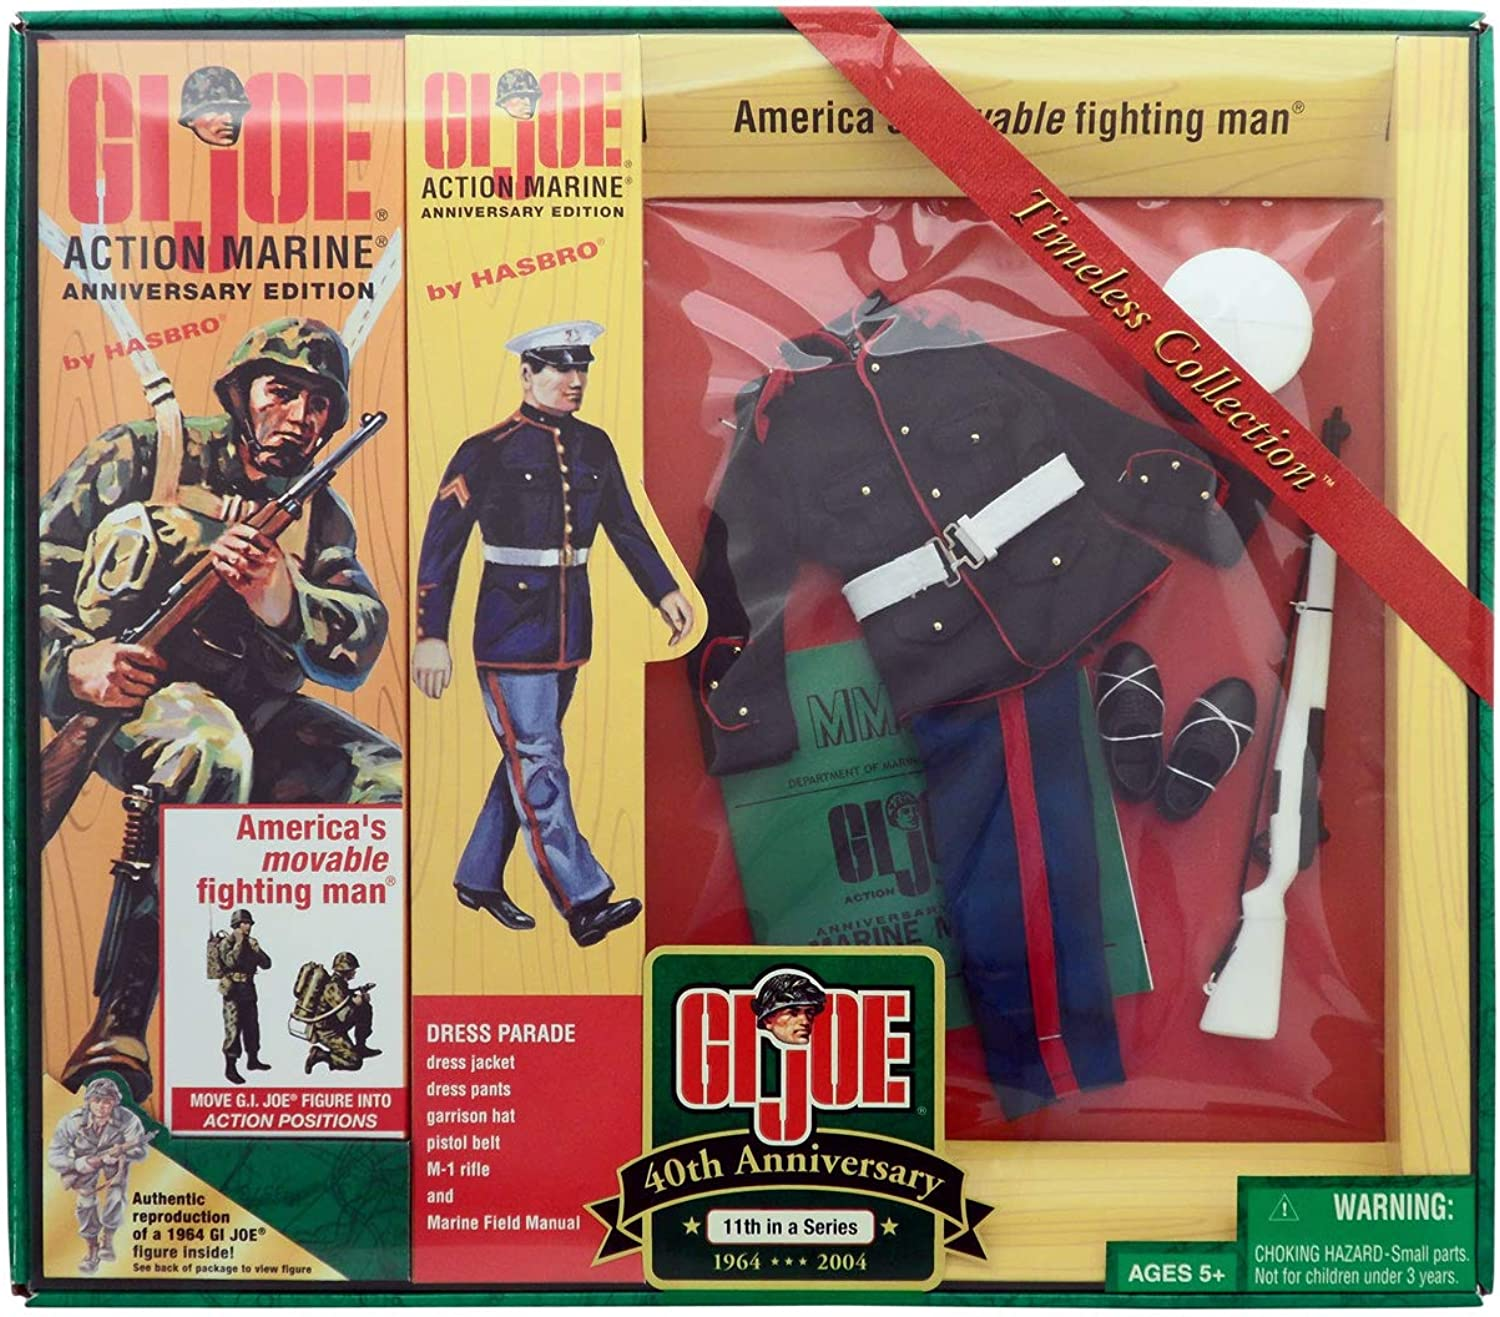 Gi Joe 12  40th anniversary timeless collection Action Marine 11th in a series by Hasbro